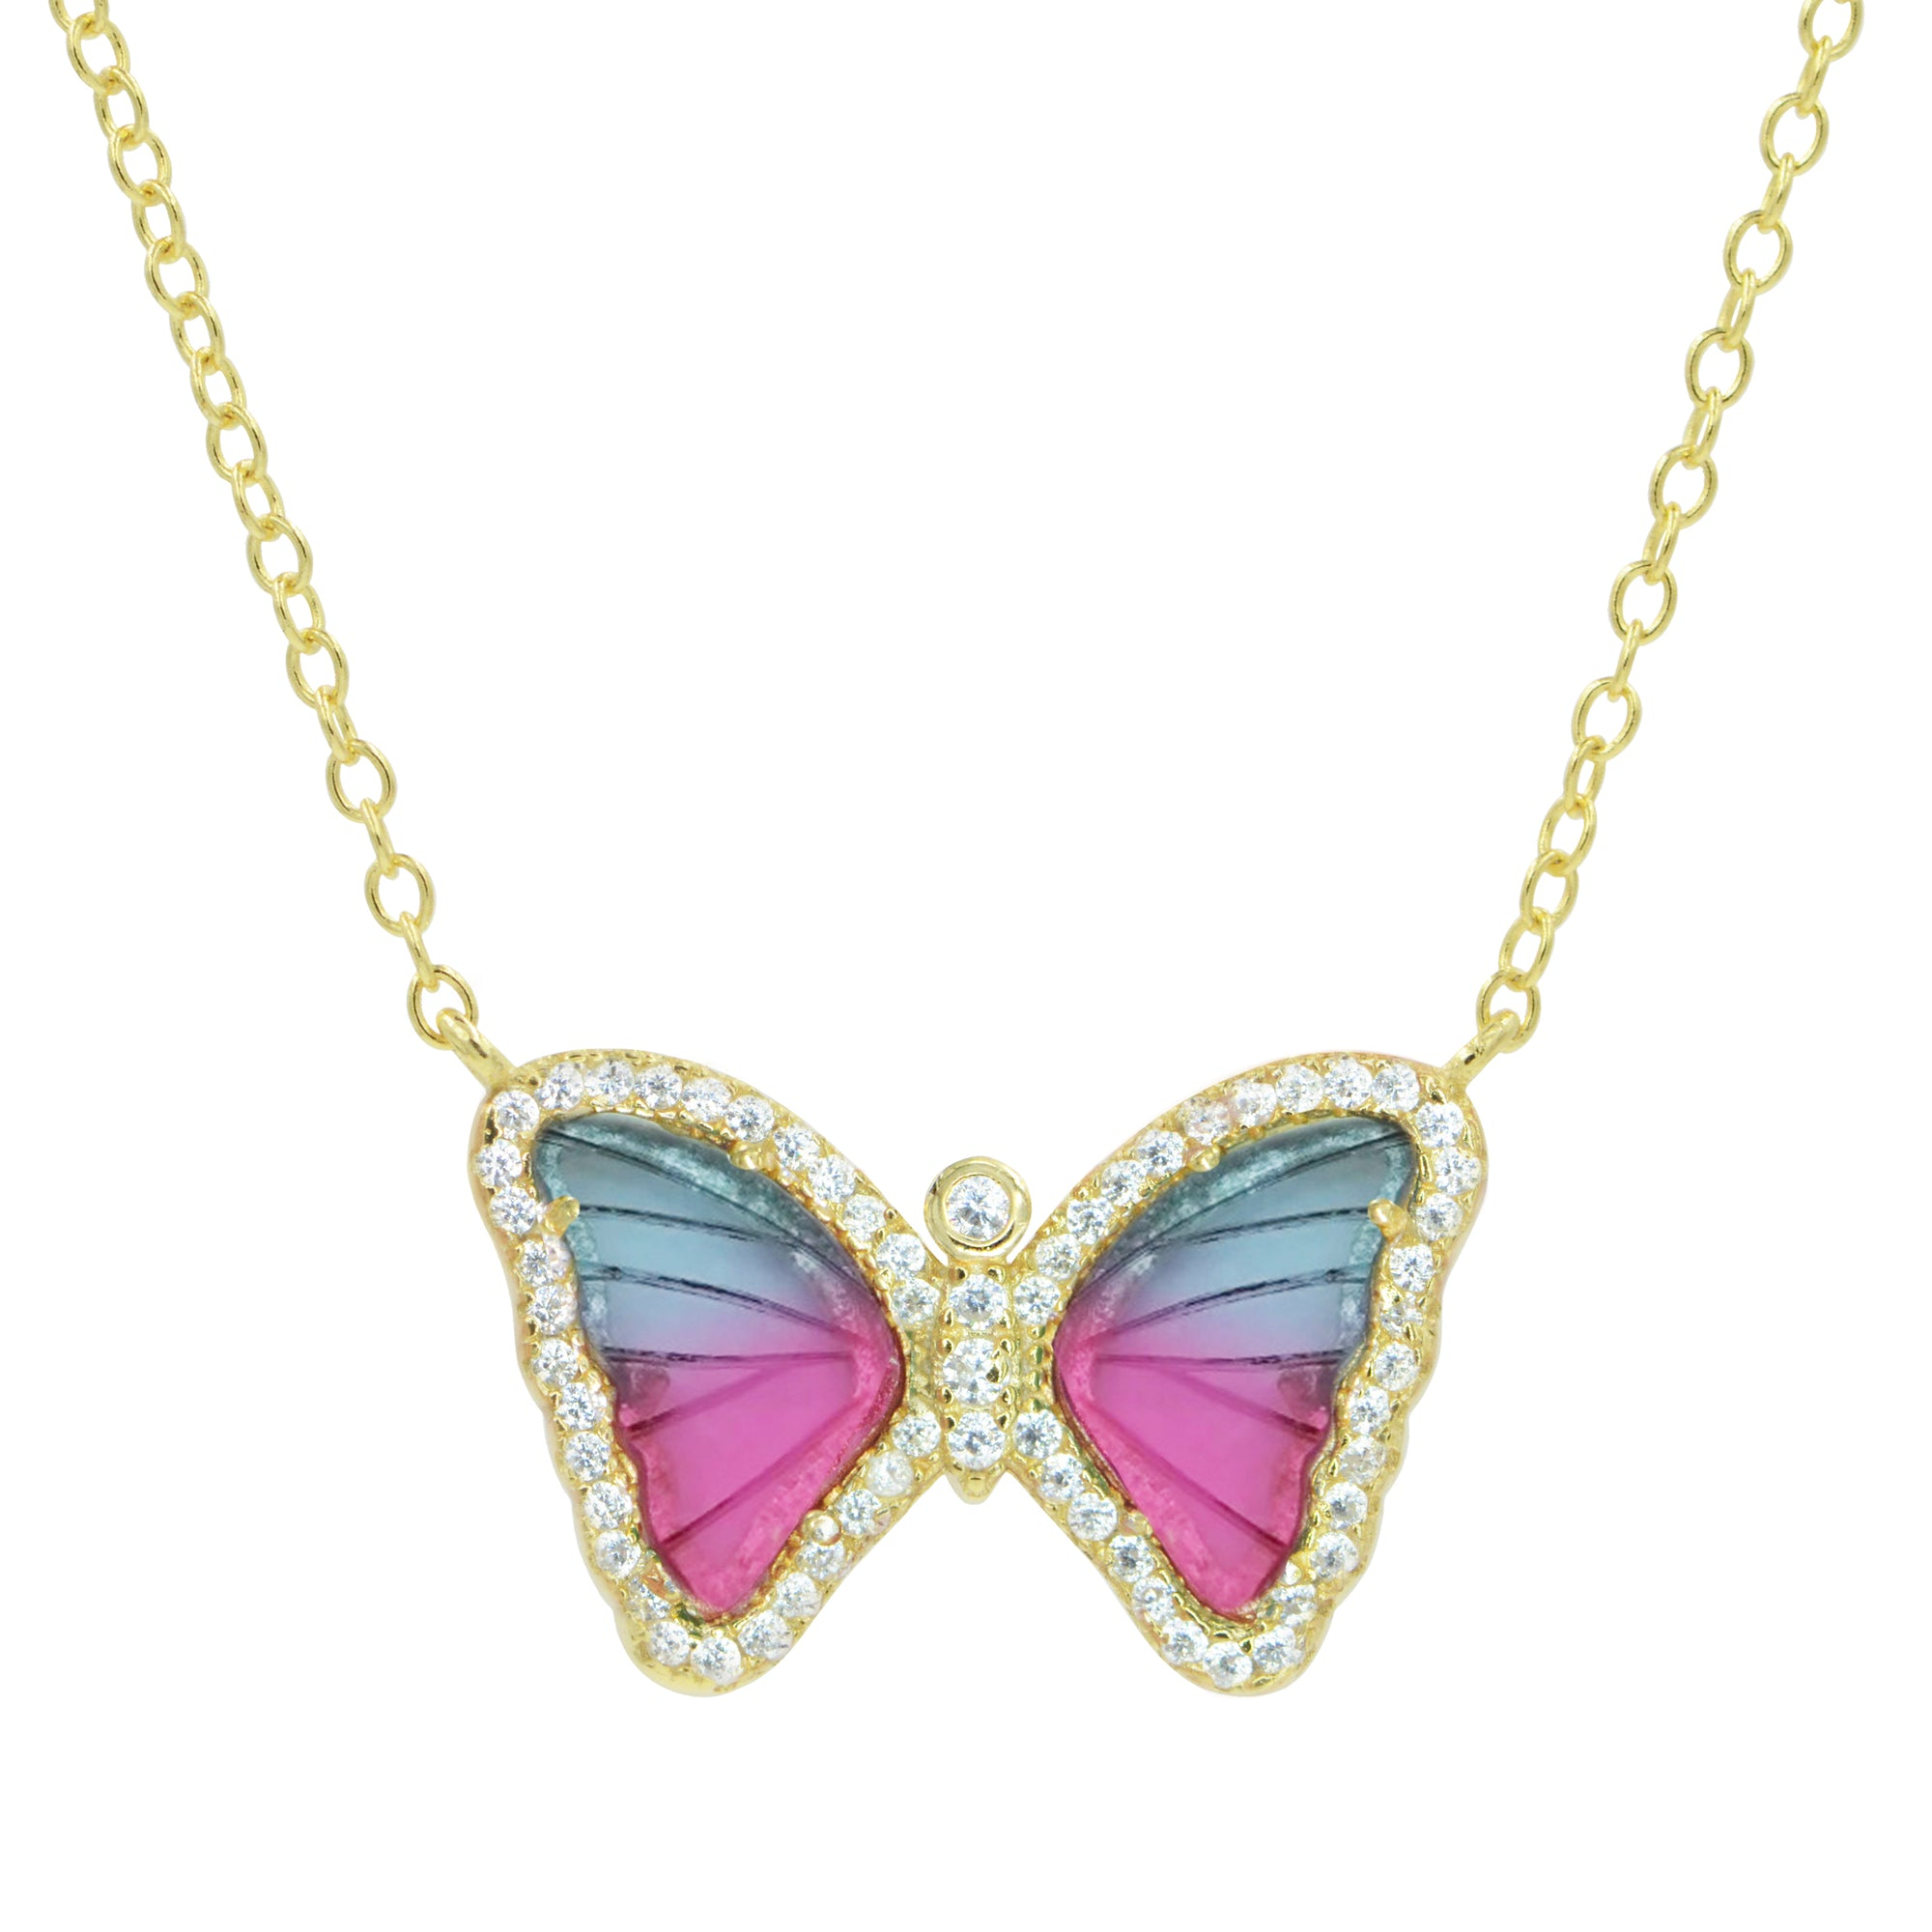 Mini gemstone butterfly necklace in bicolor tourmaline pink and blue